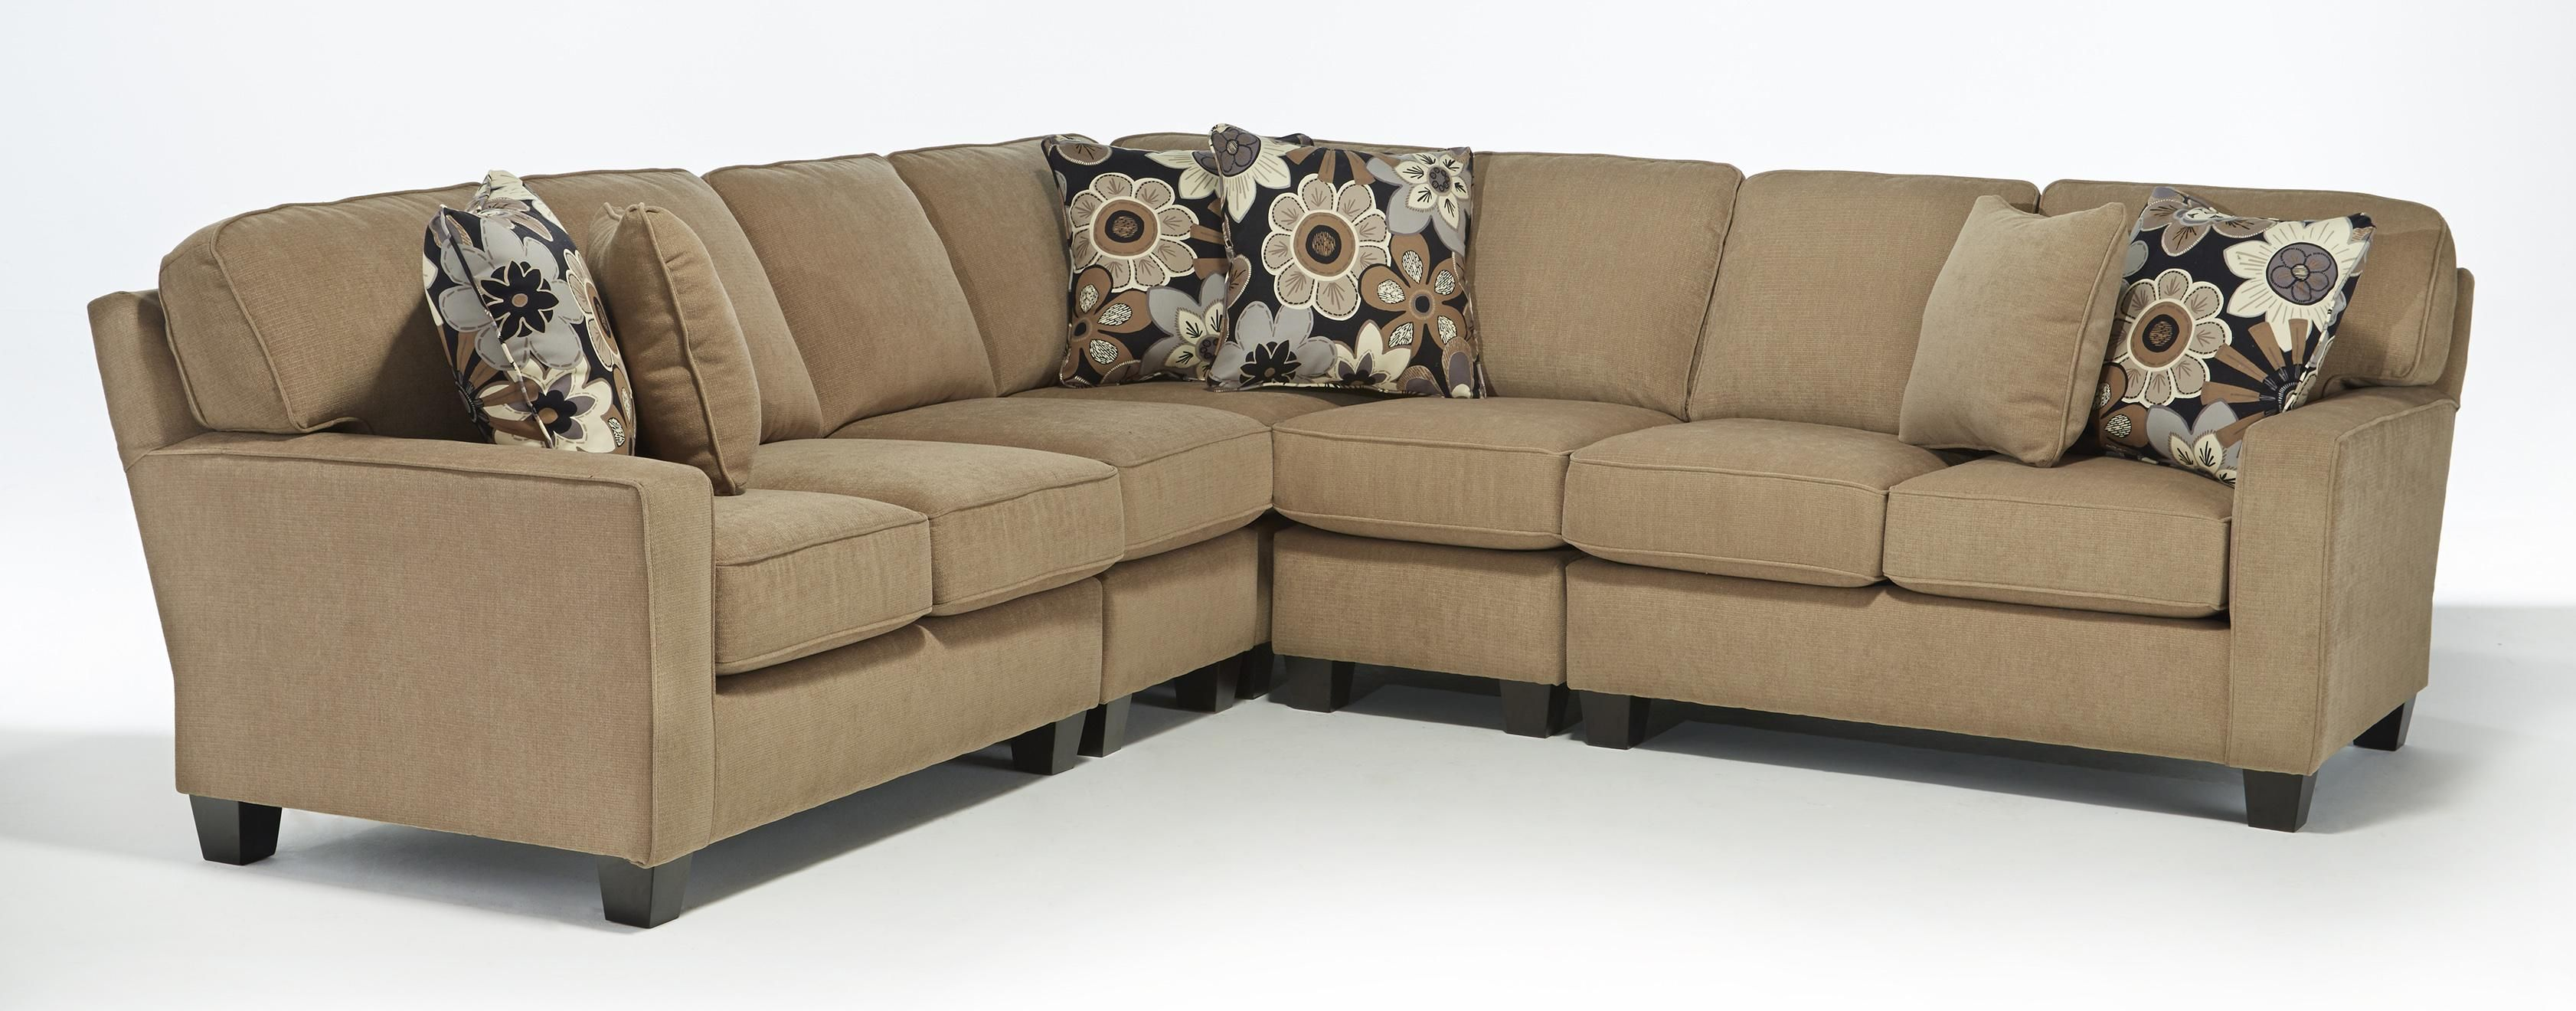 Living room furniture cordoba 2 pc sectional - Find This Pin And More On Moms Living Room Annabel 5 Pc Sectional Sofa